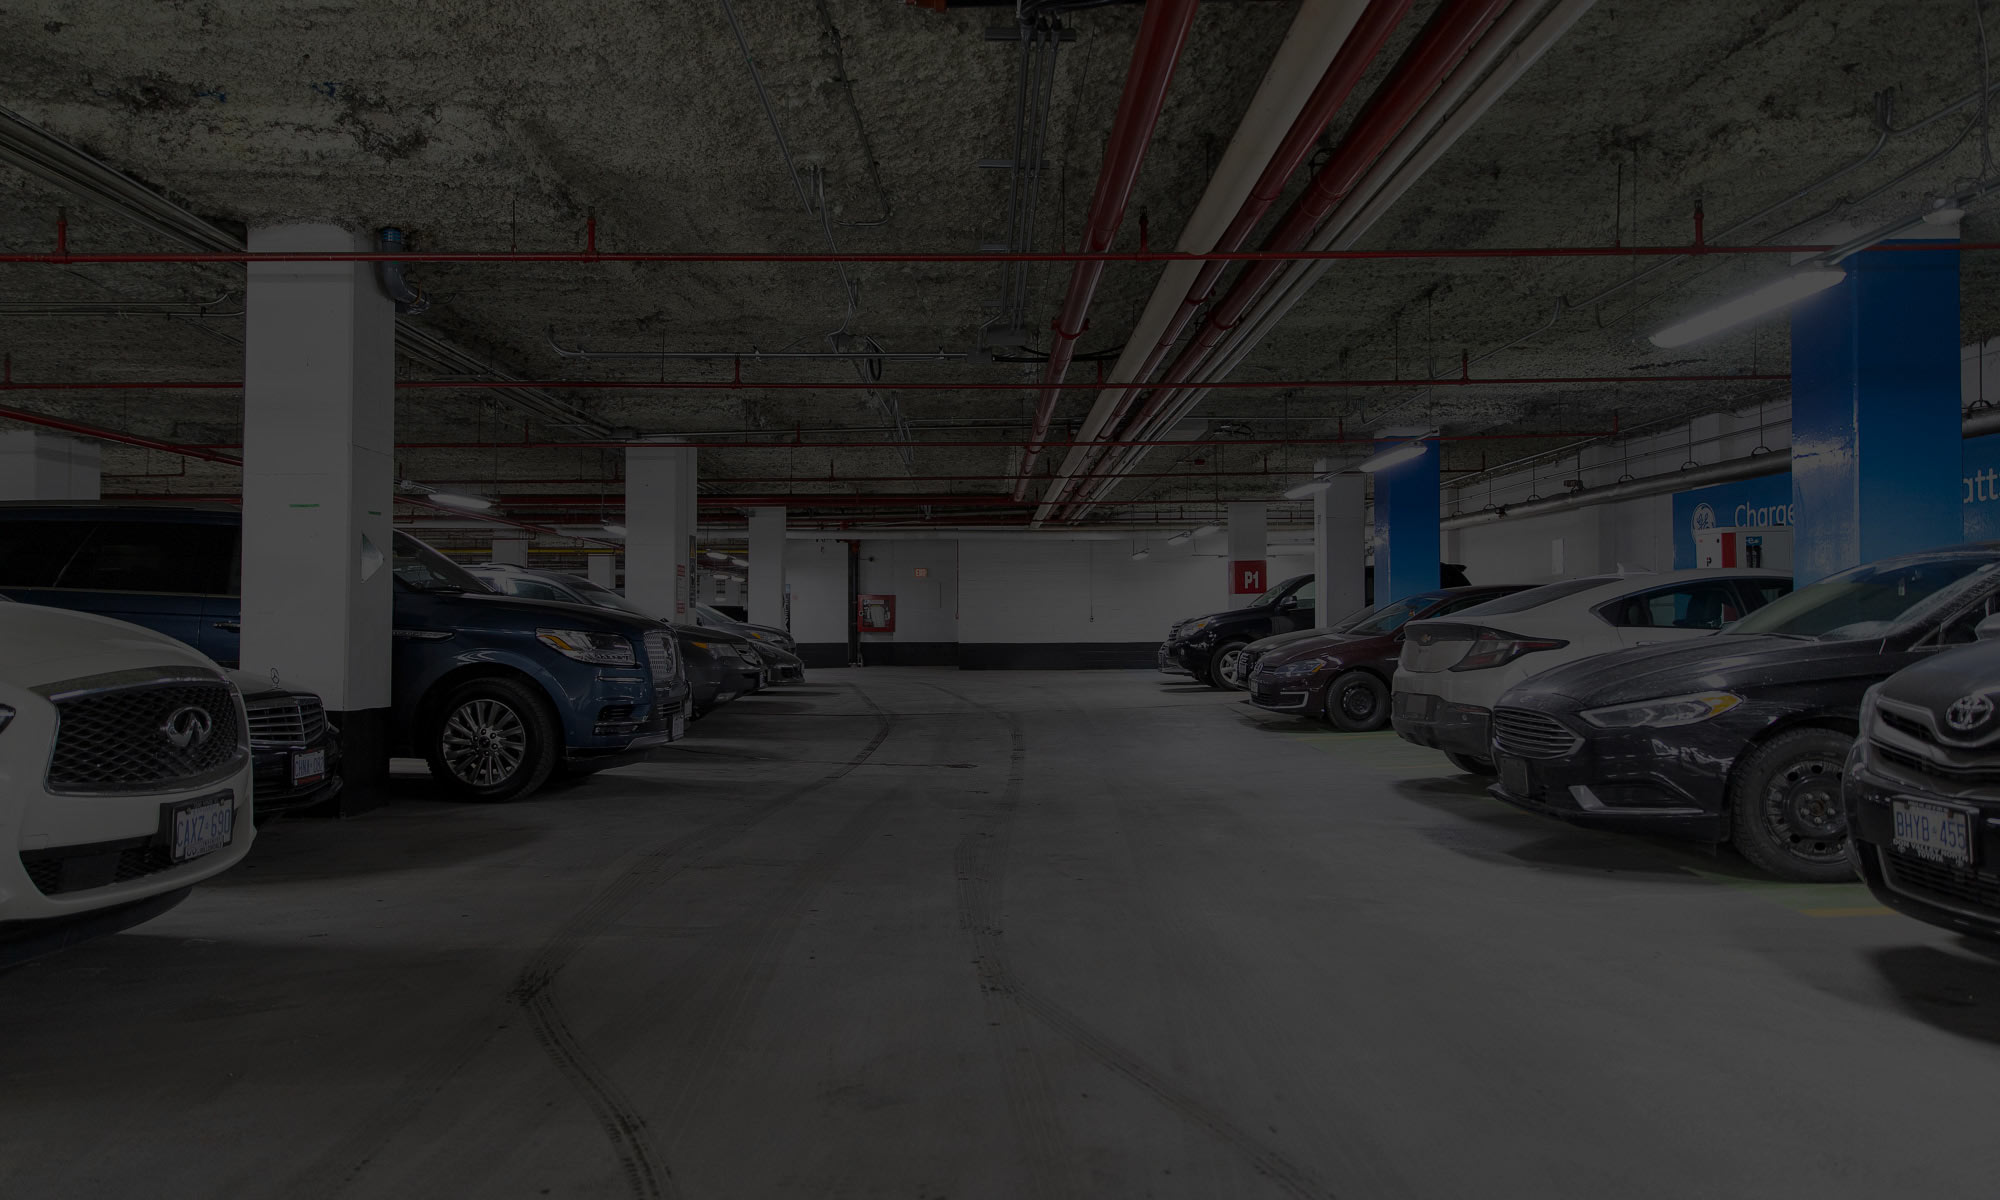 Edison Centre Parking Garage | Toronto Parking | Impark